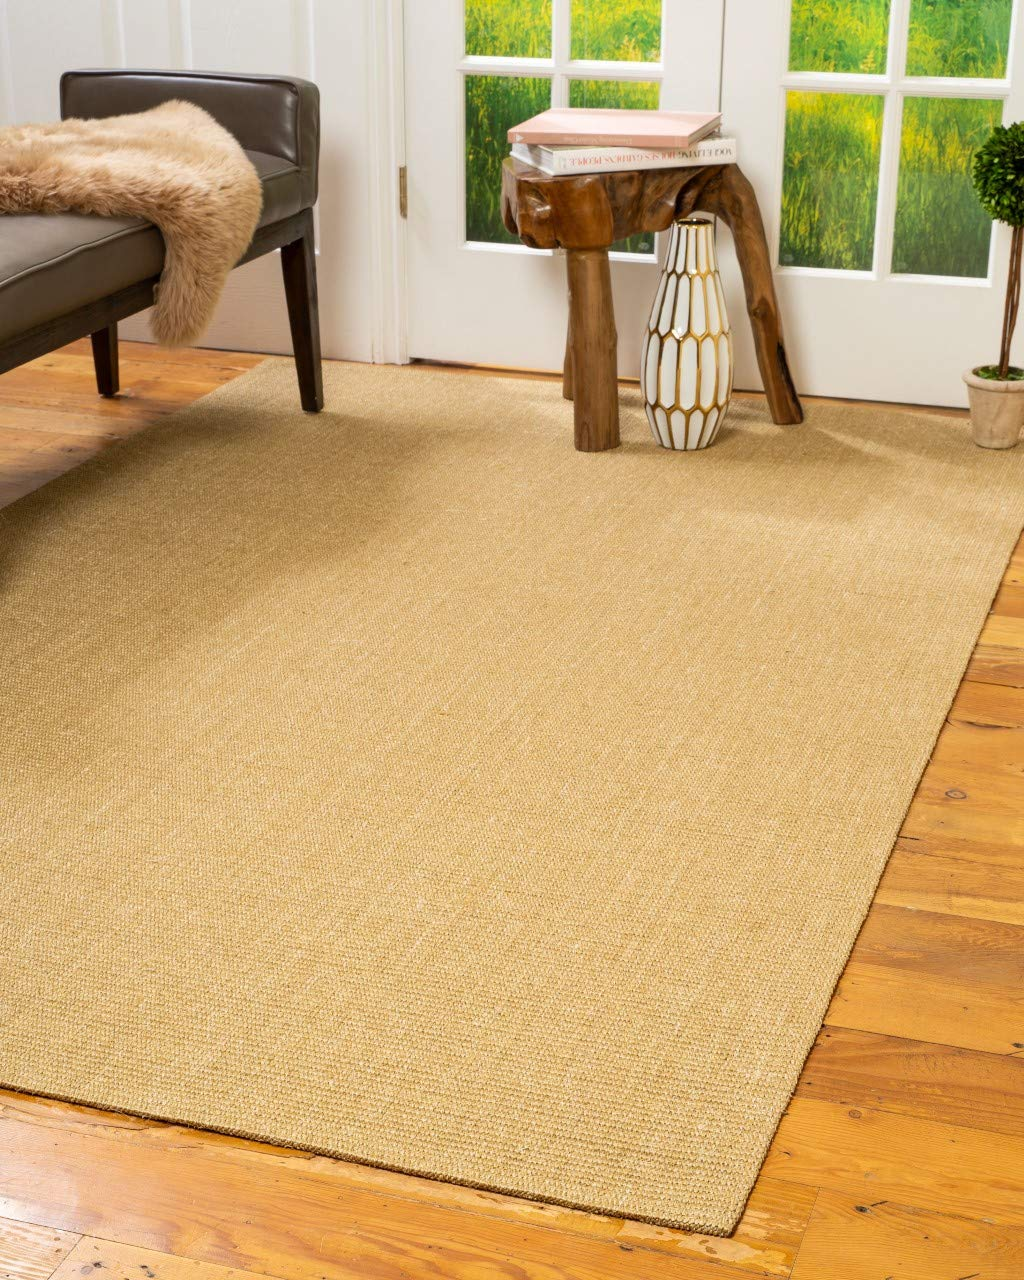 Natural Area Rugs Natural Fiber Tribeca Beige Sisal Rug, 5 x 8